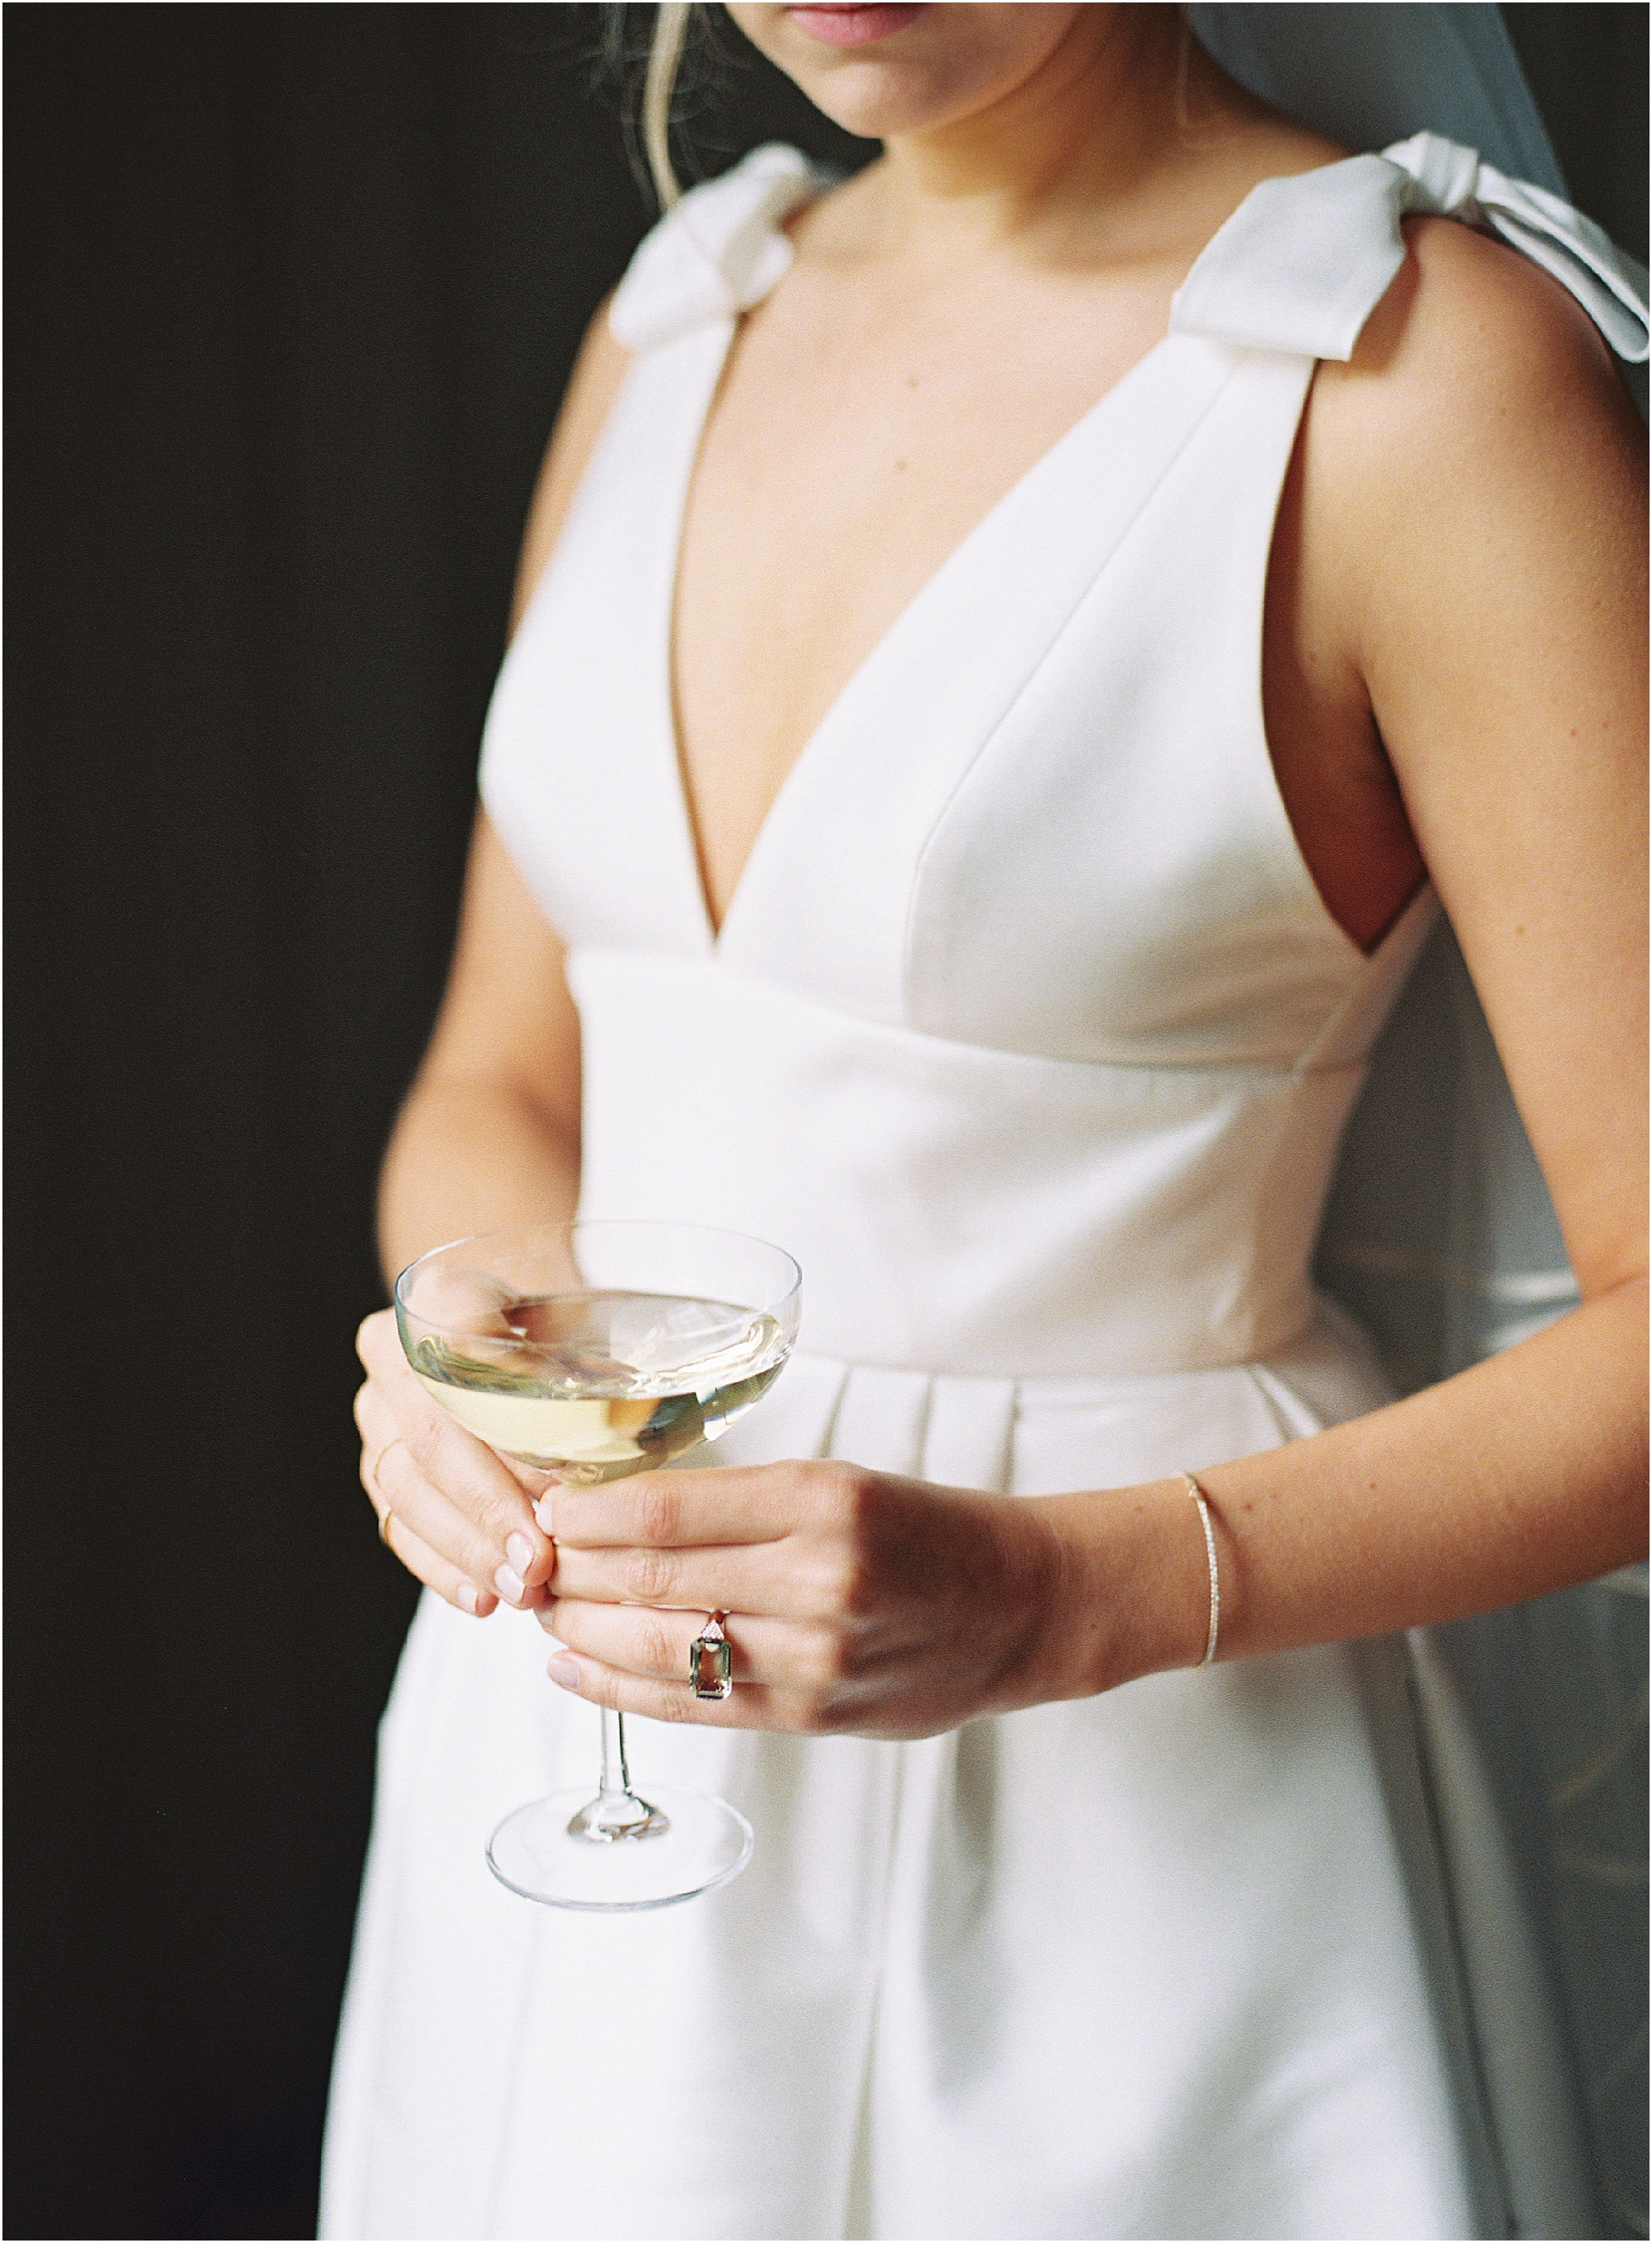 Elegant and sophisticated bride holding glass of champagne